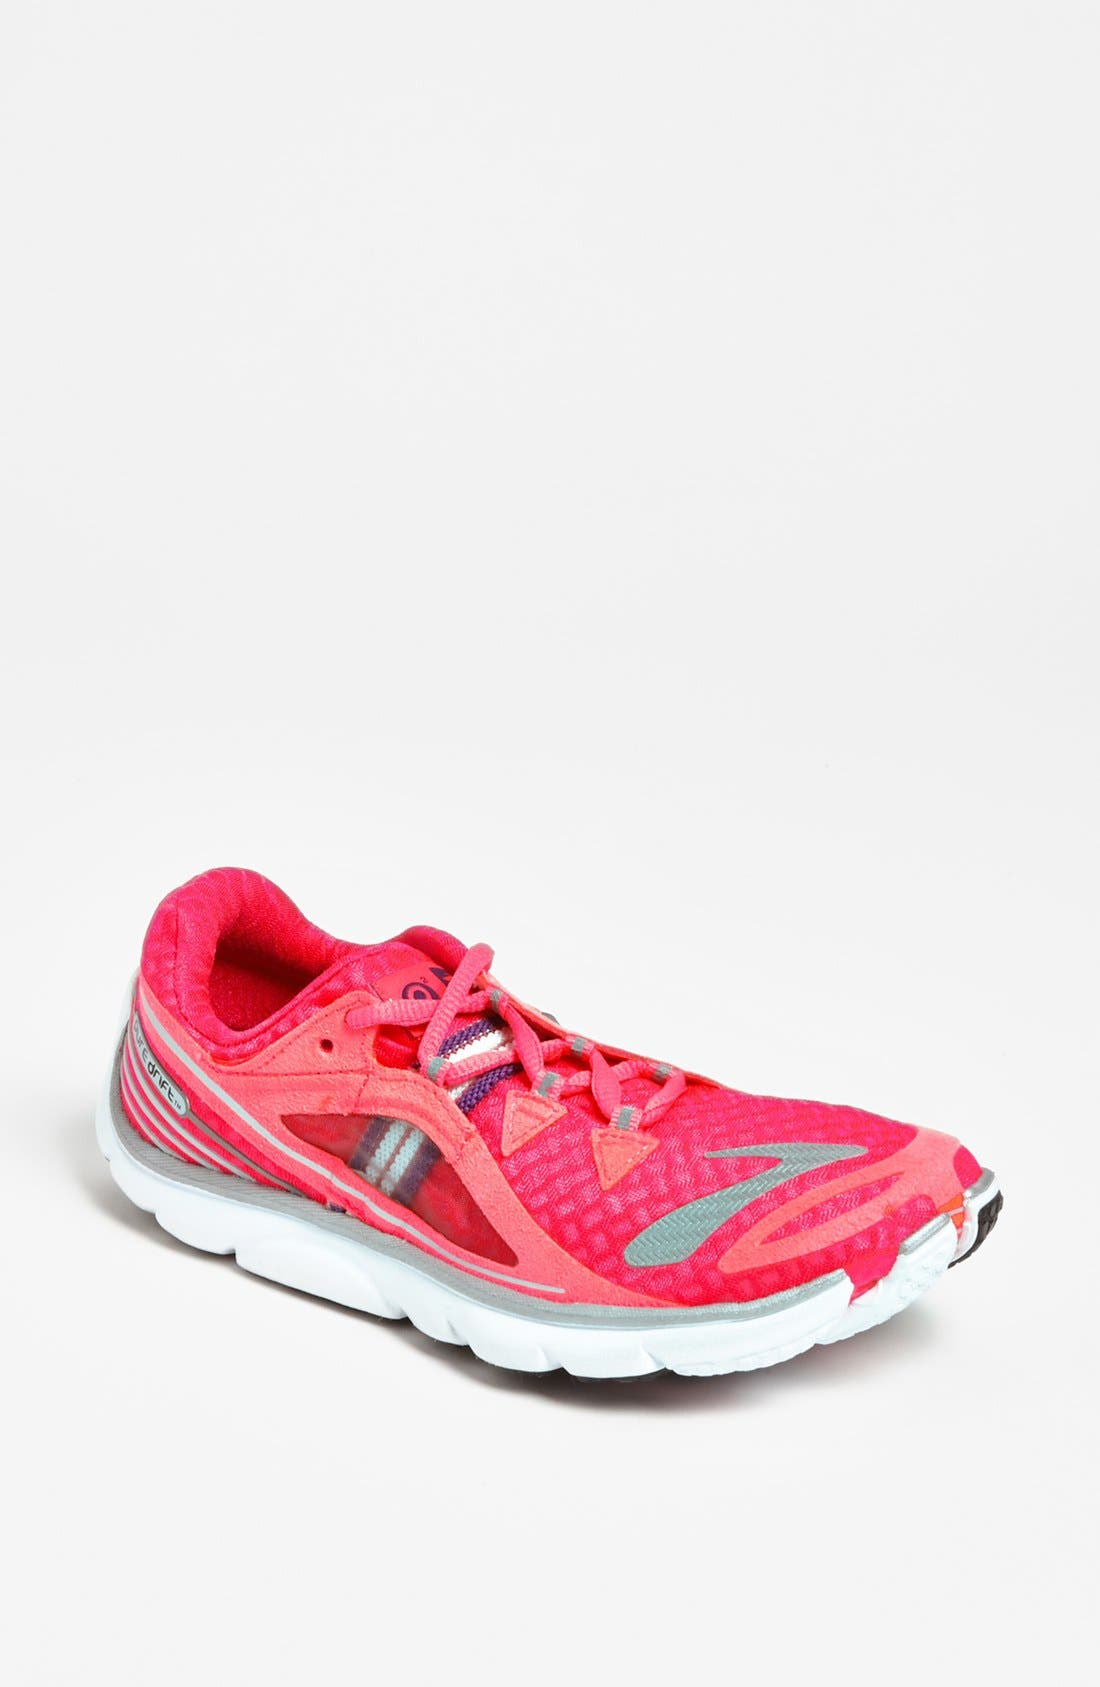 Main Image - Brooks 'PureDrift' Running Shoe (Women)